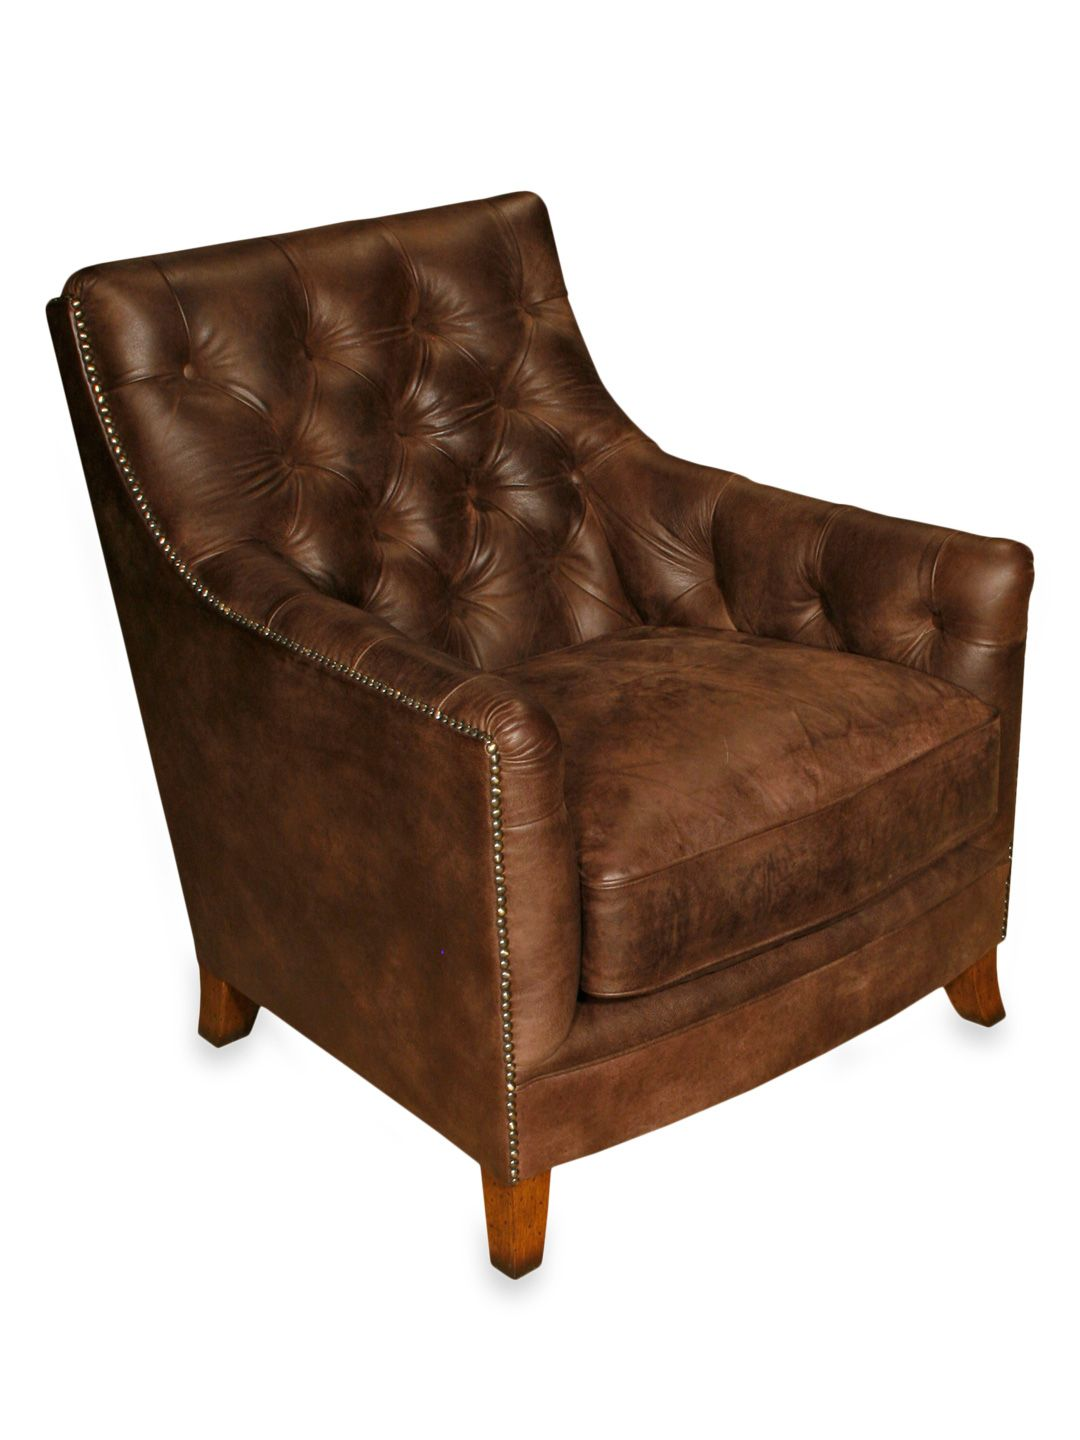 Albany Chair Distressed chair, Chair and ottoman